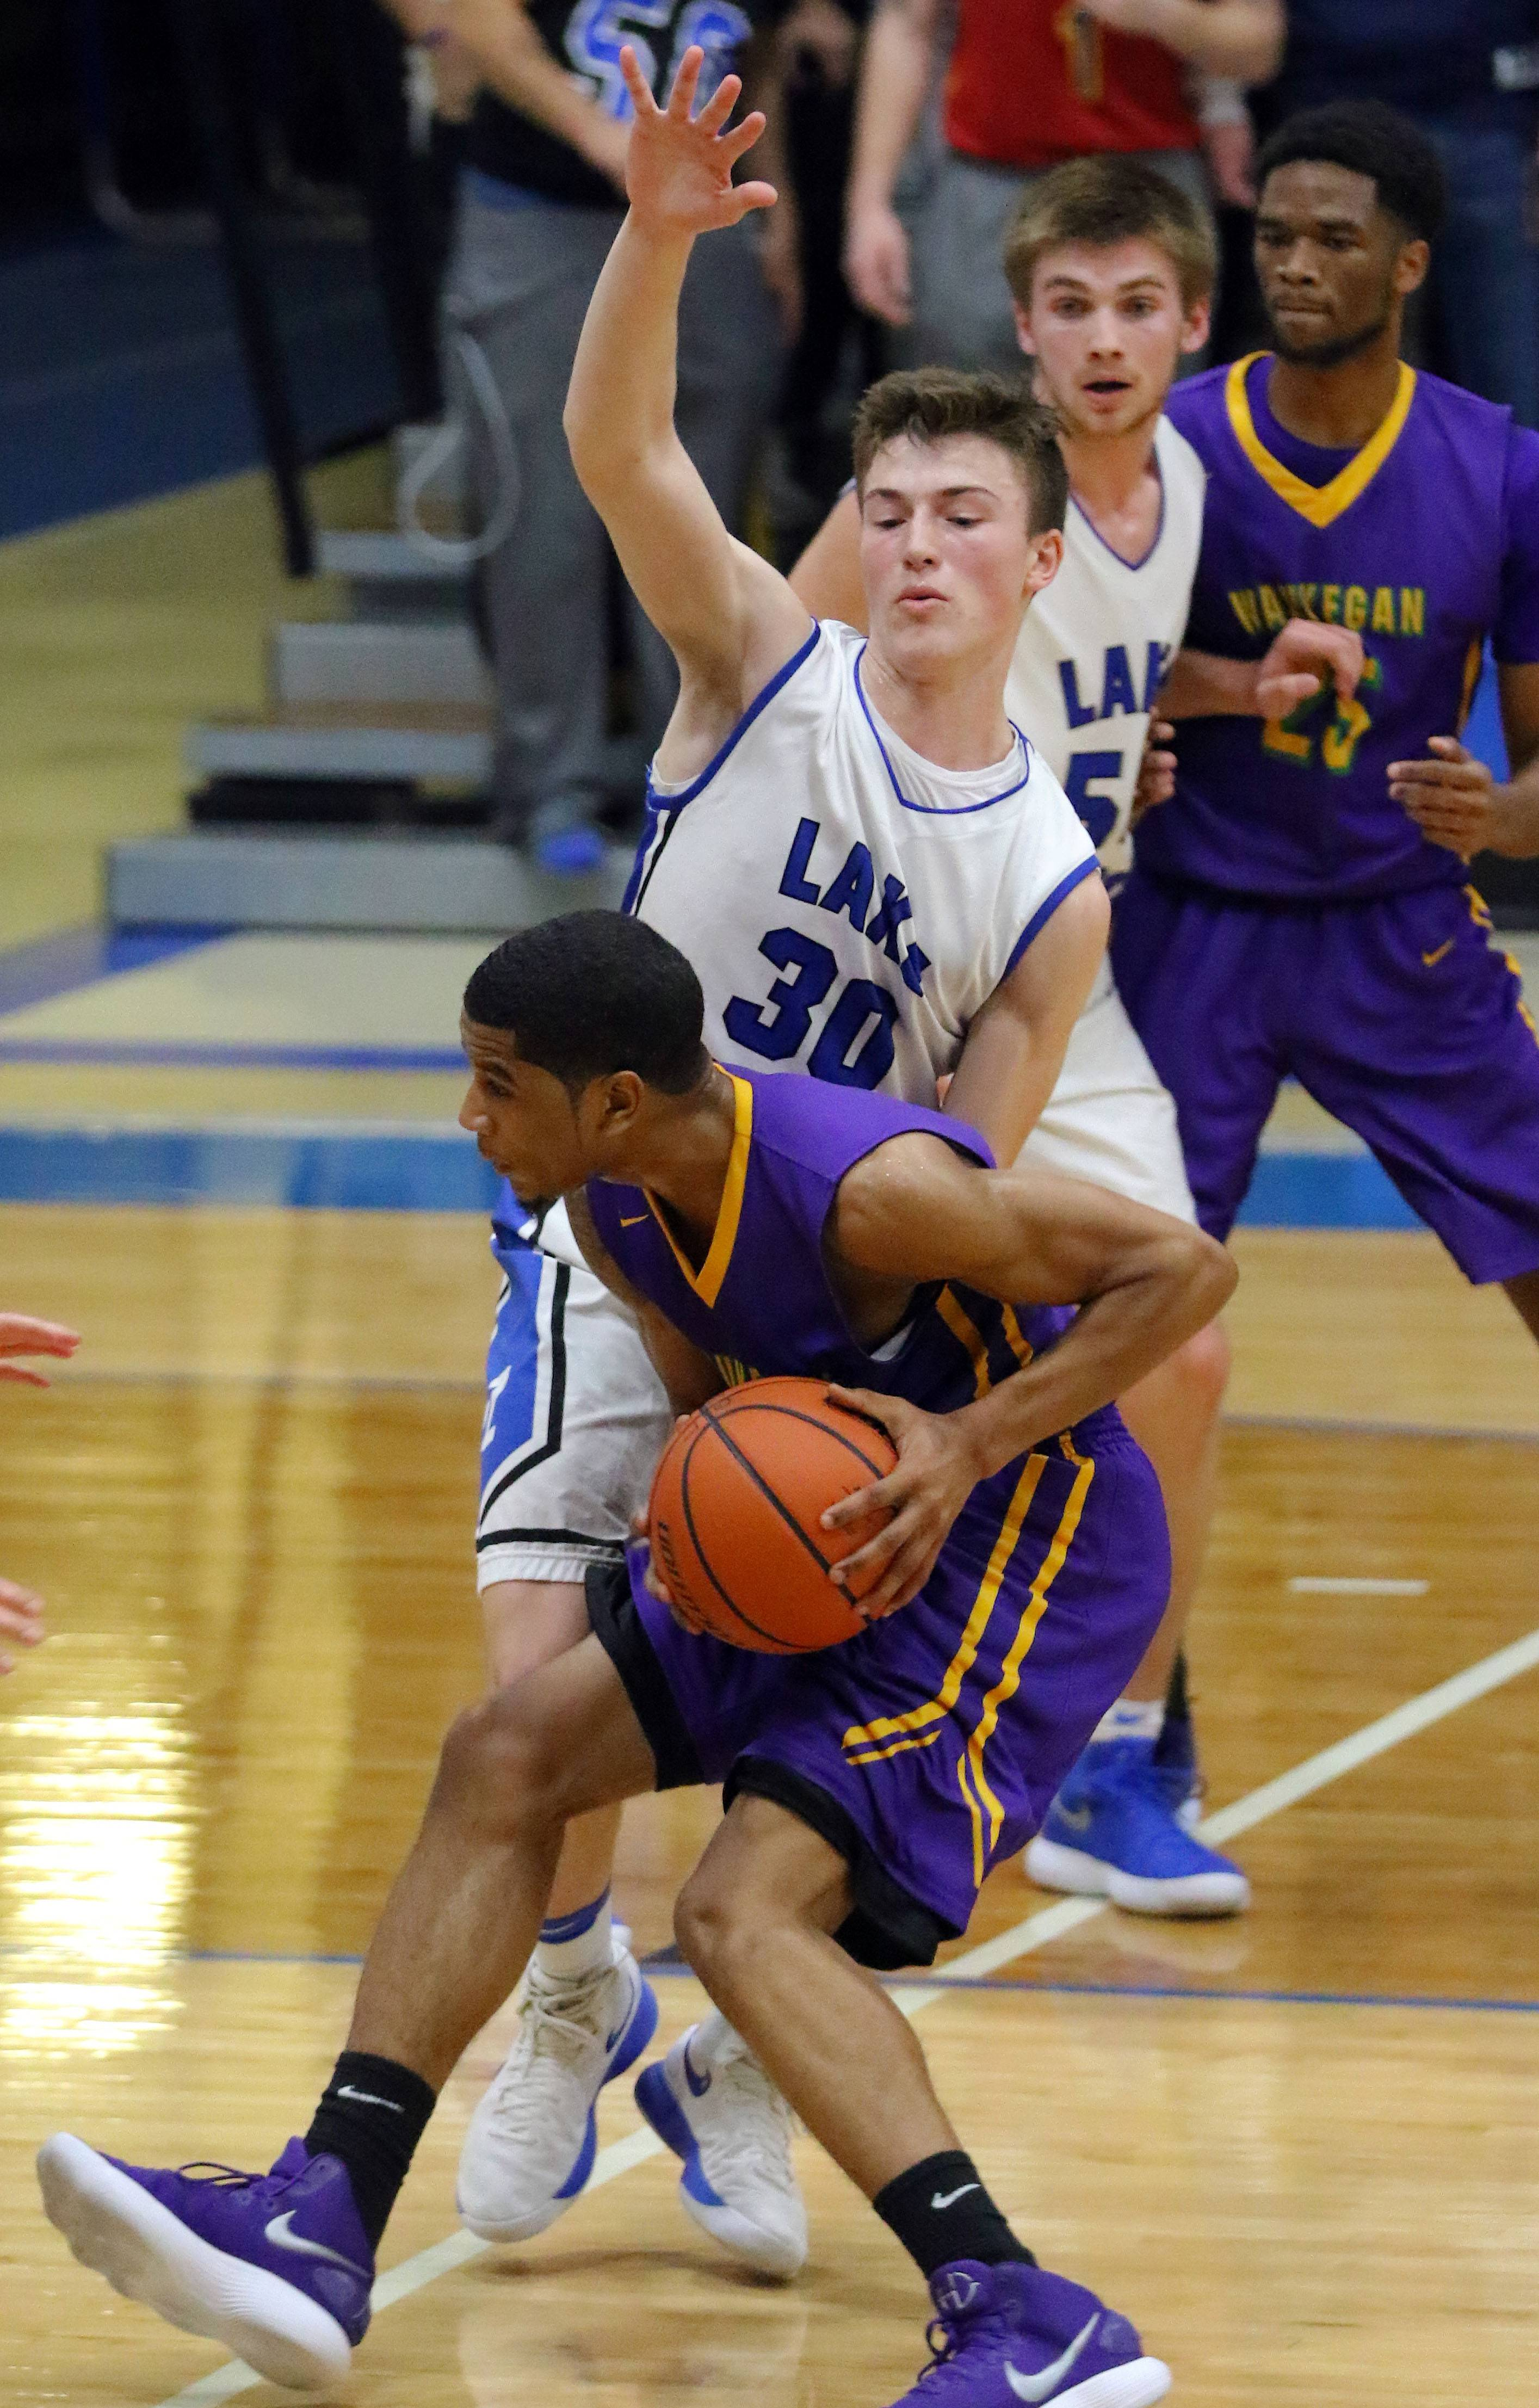 Lake Zurich's Will Tucker (30) defends against Waukegan's Jordan Brown on Friday in Lake Zurich.